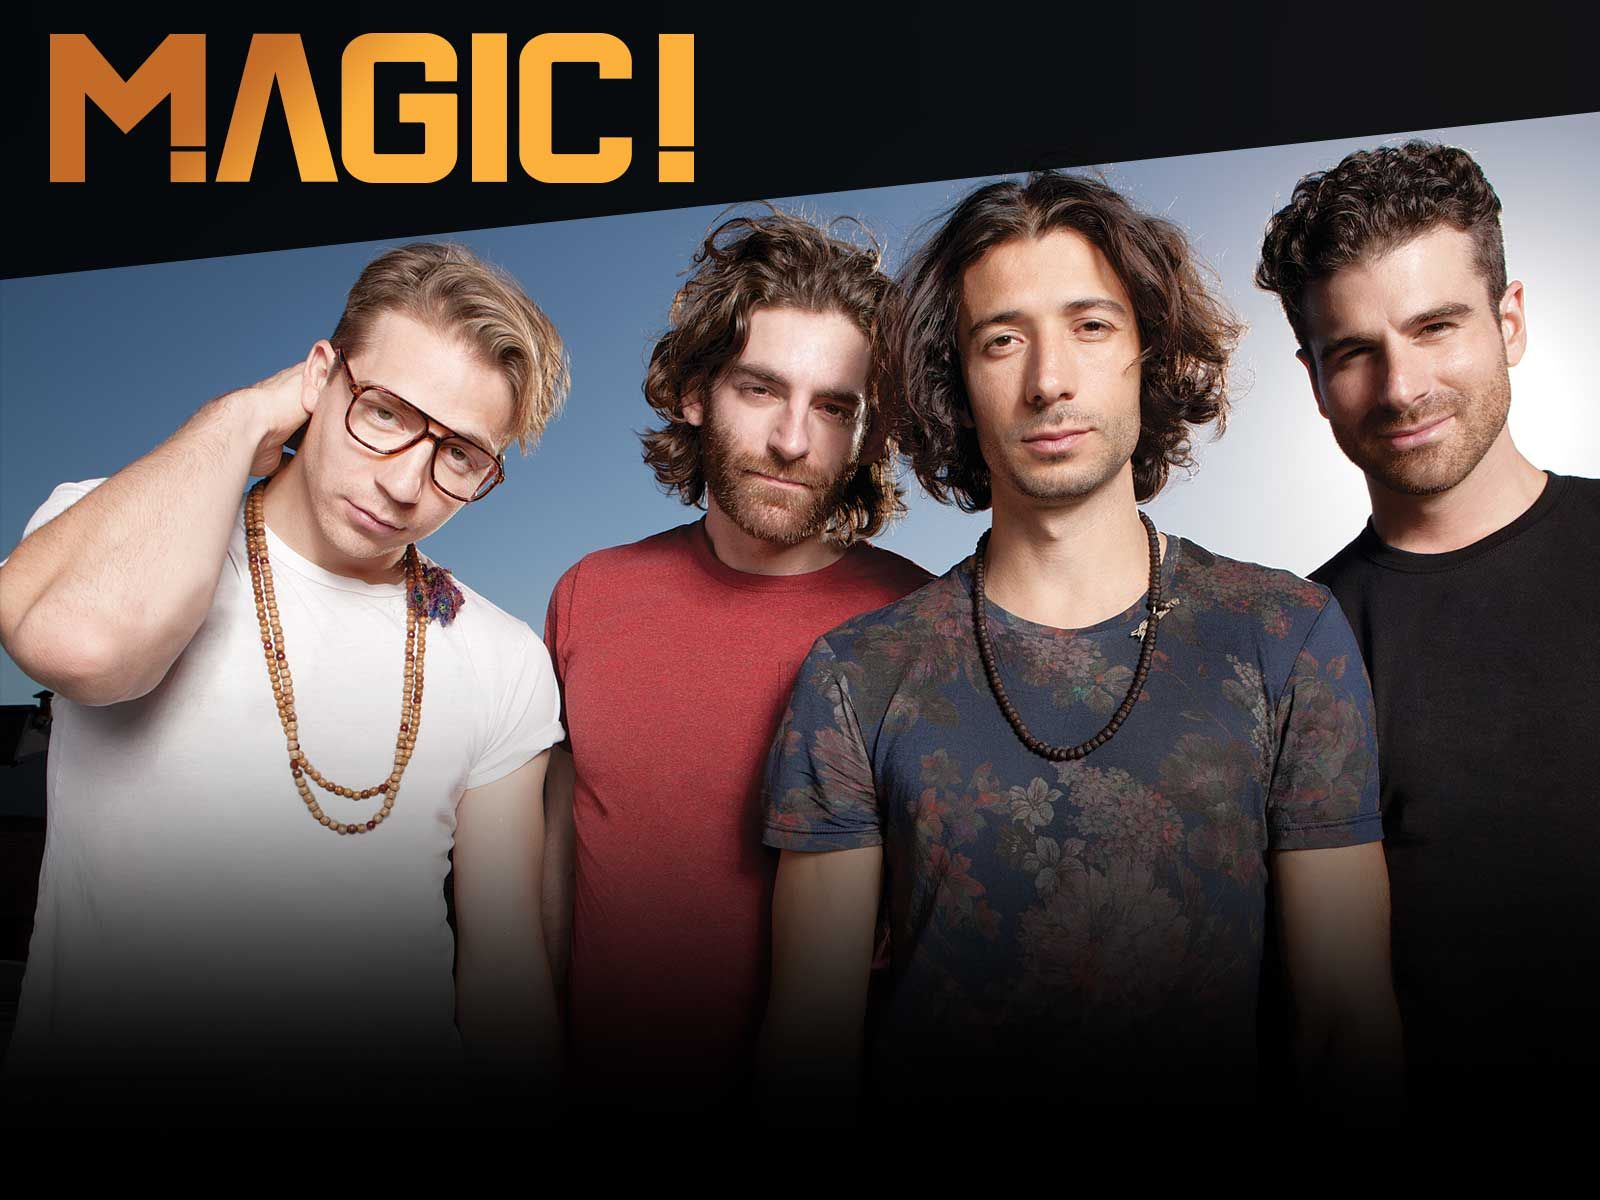 Canadian reggae group Magic! are the artists of the song